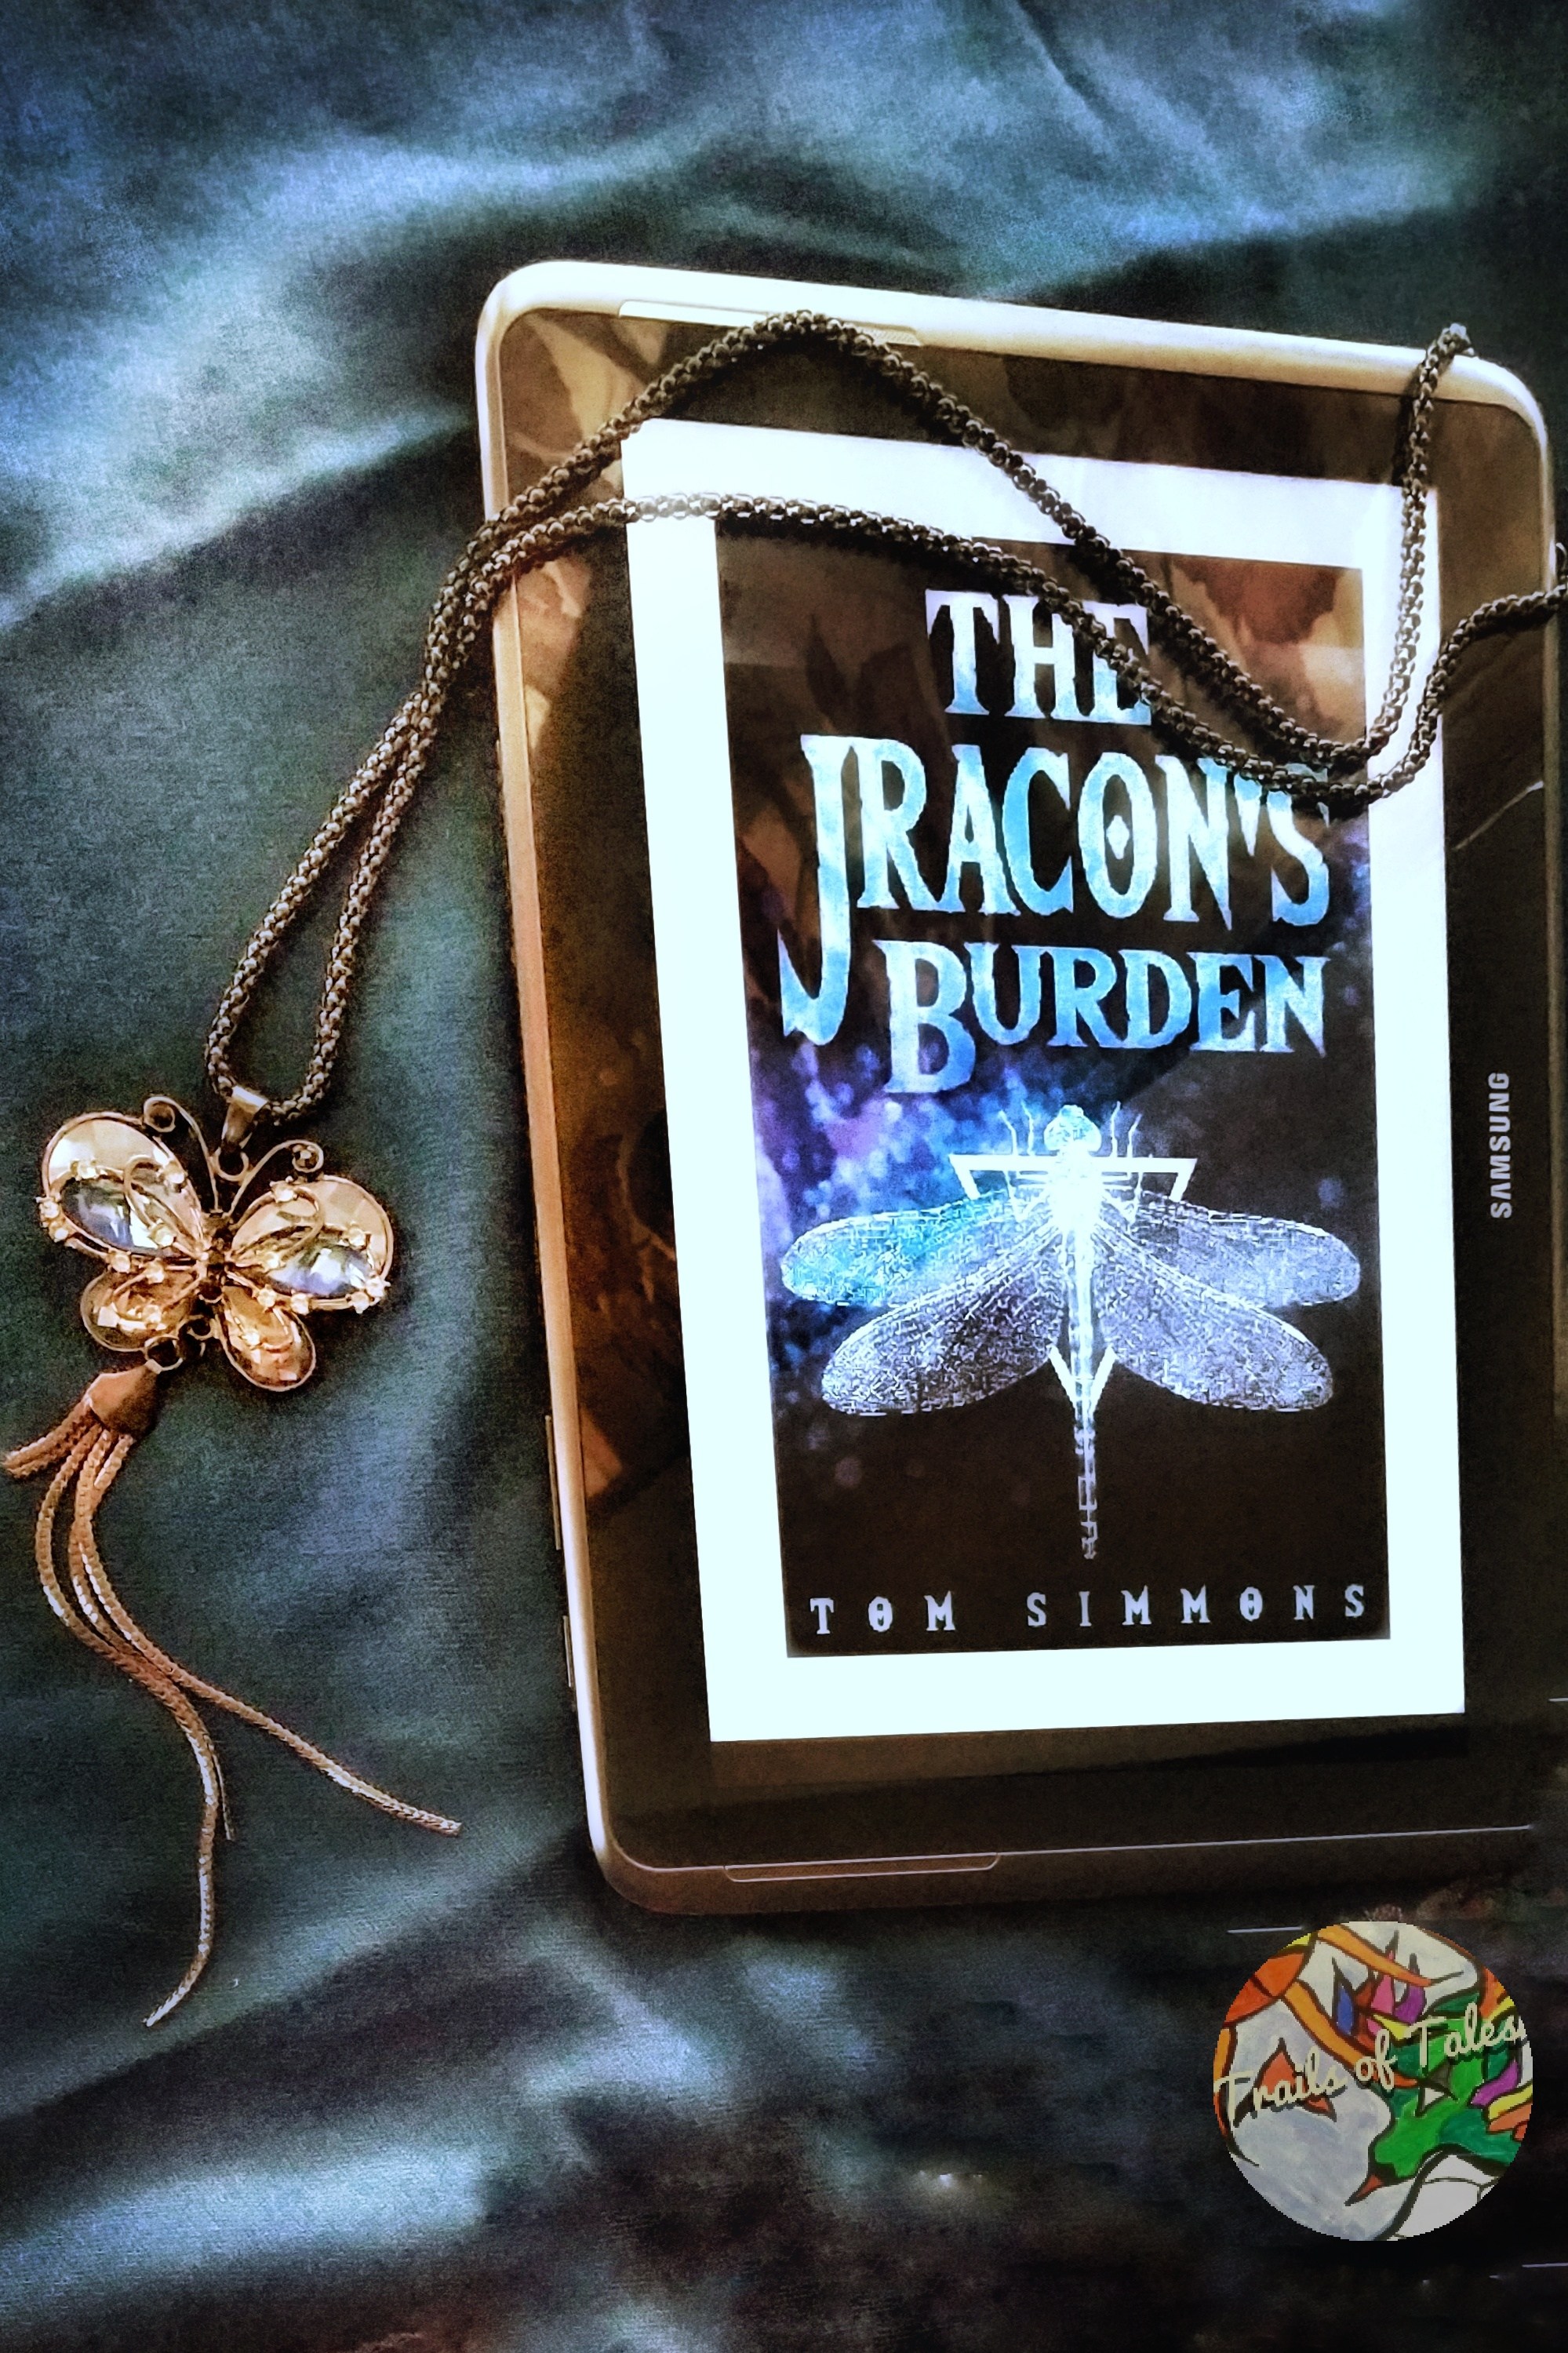 Book cover of The Jracon's burden by Tom Simmons